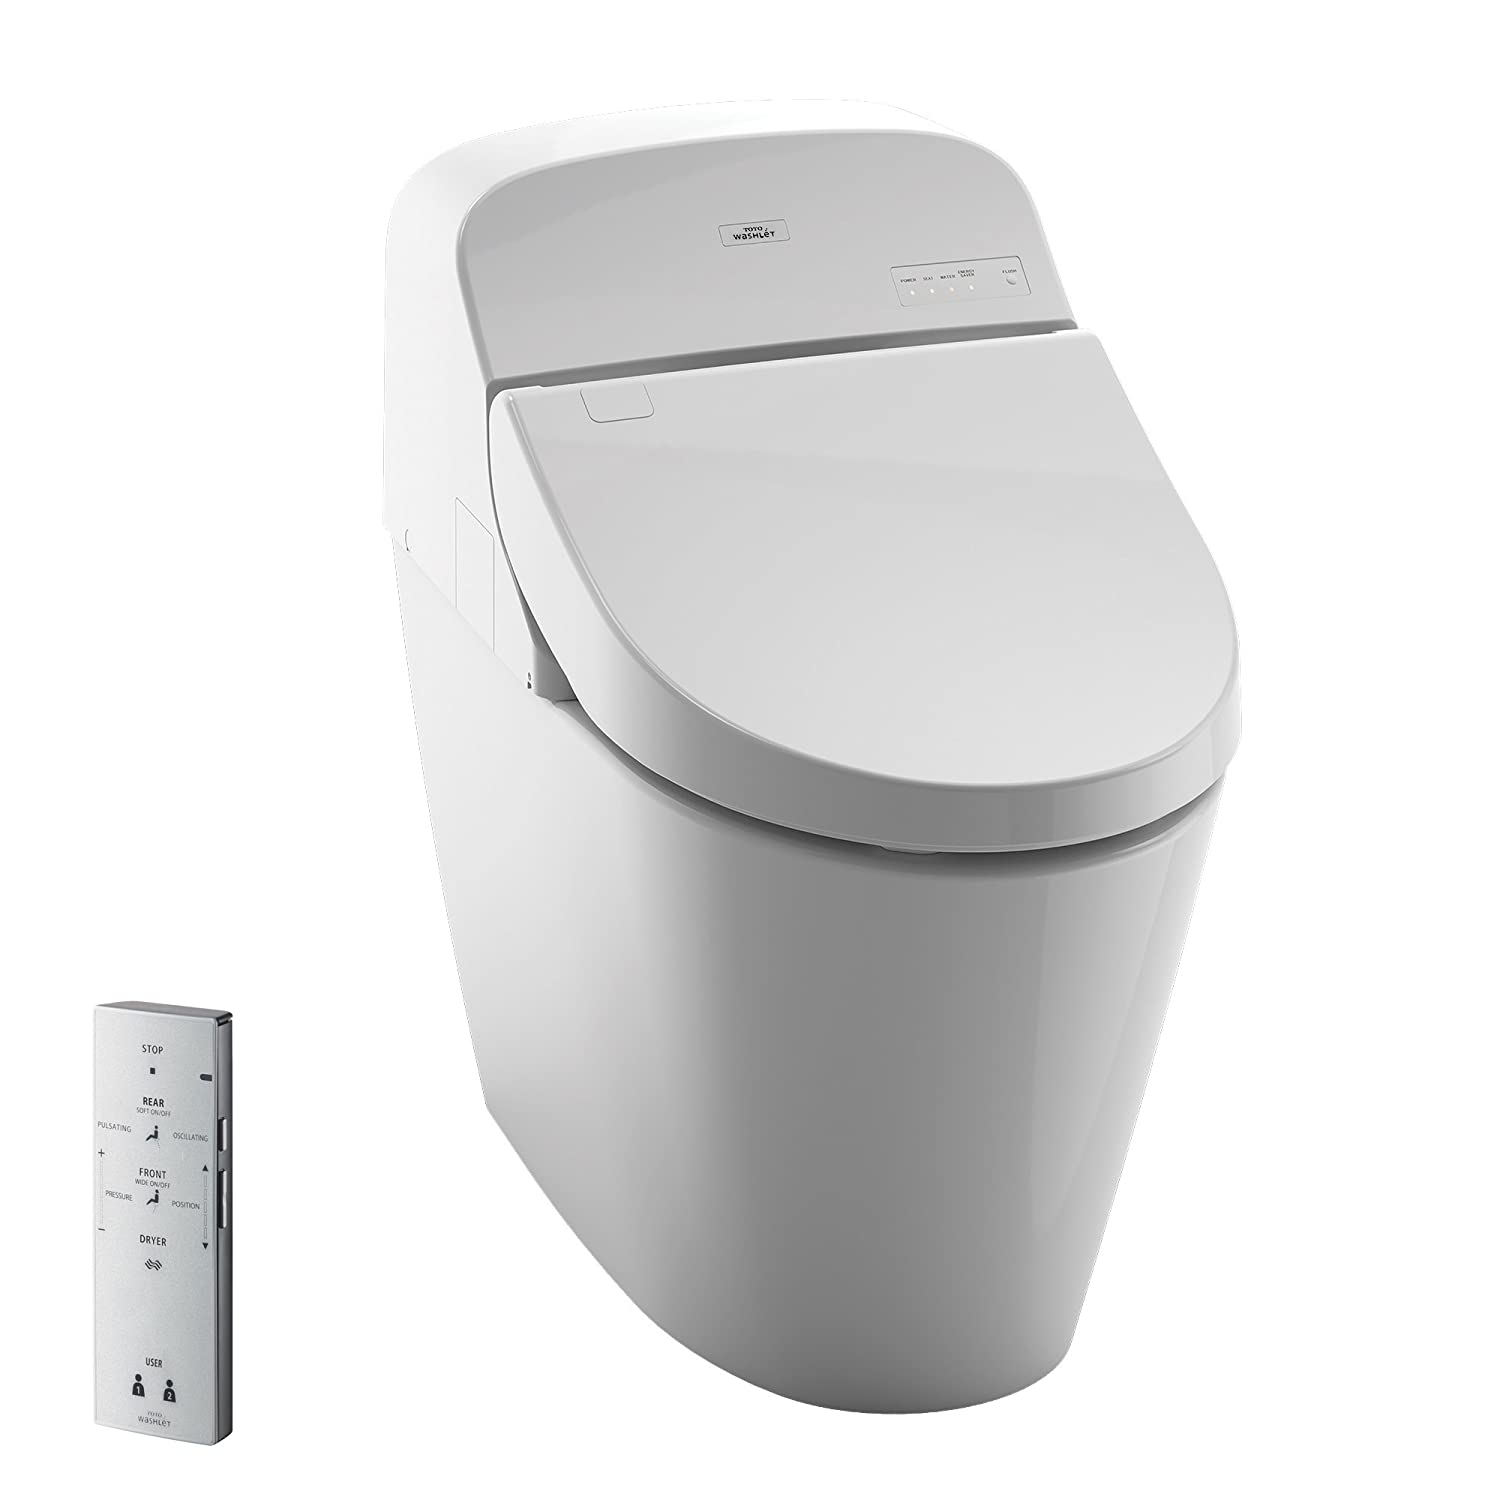 Toto Washlet Toilet Seat.Toto Ms920cemfg 01 1 28 Gpf 0 9 Gpf Washlet With Integrated Toilet G400 Cotton White